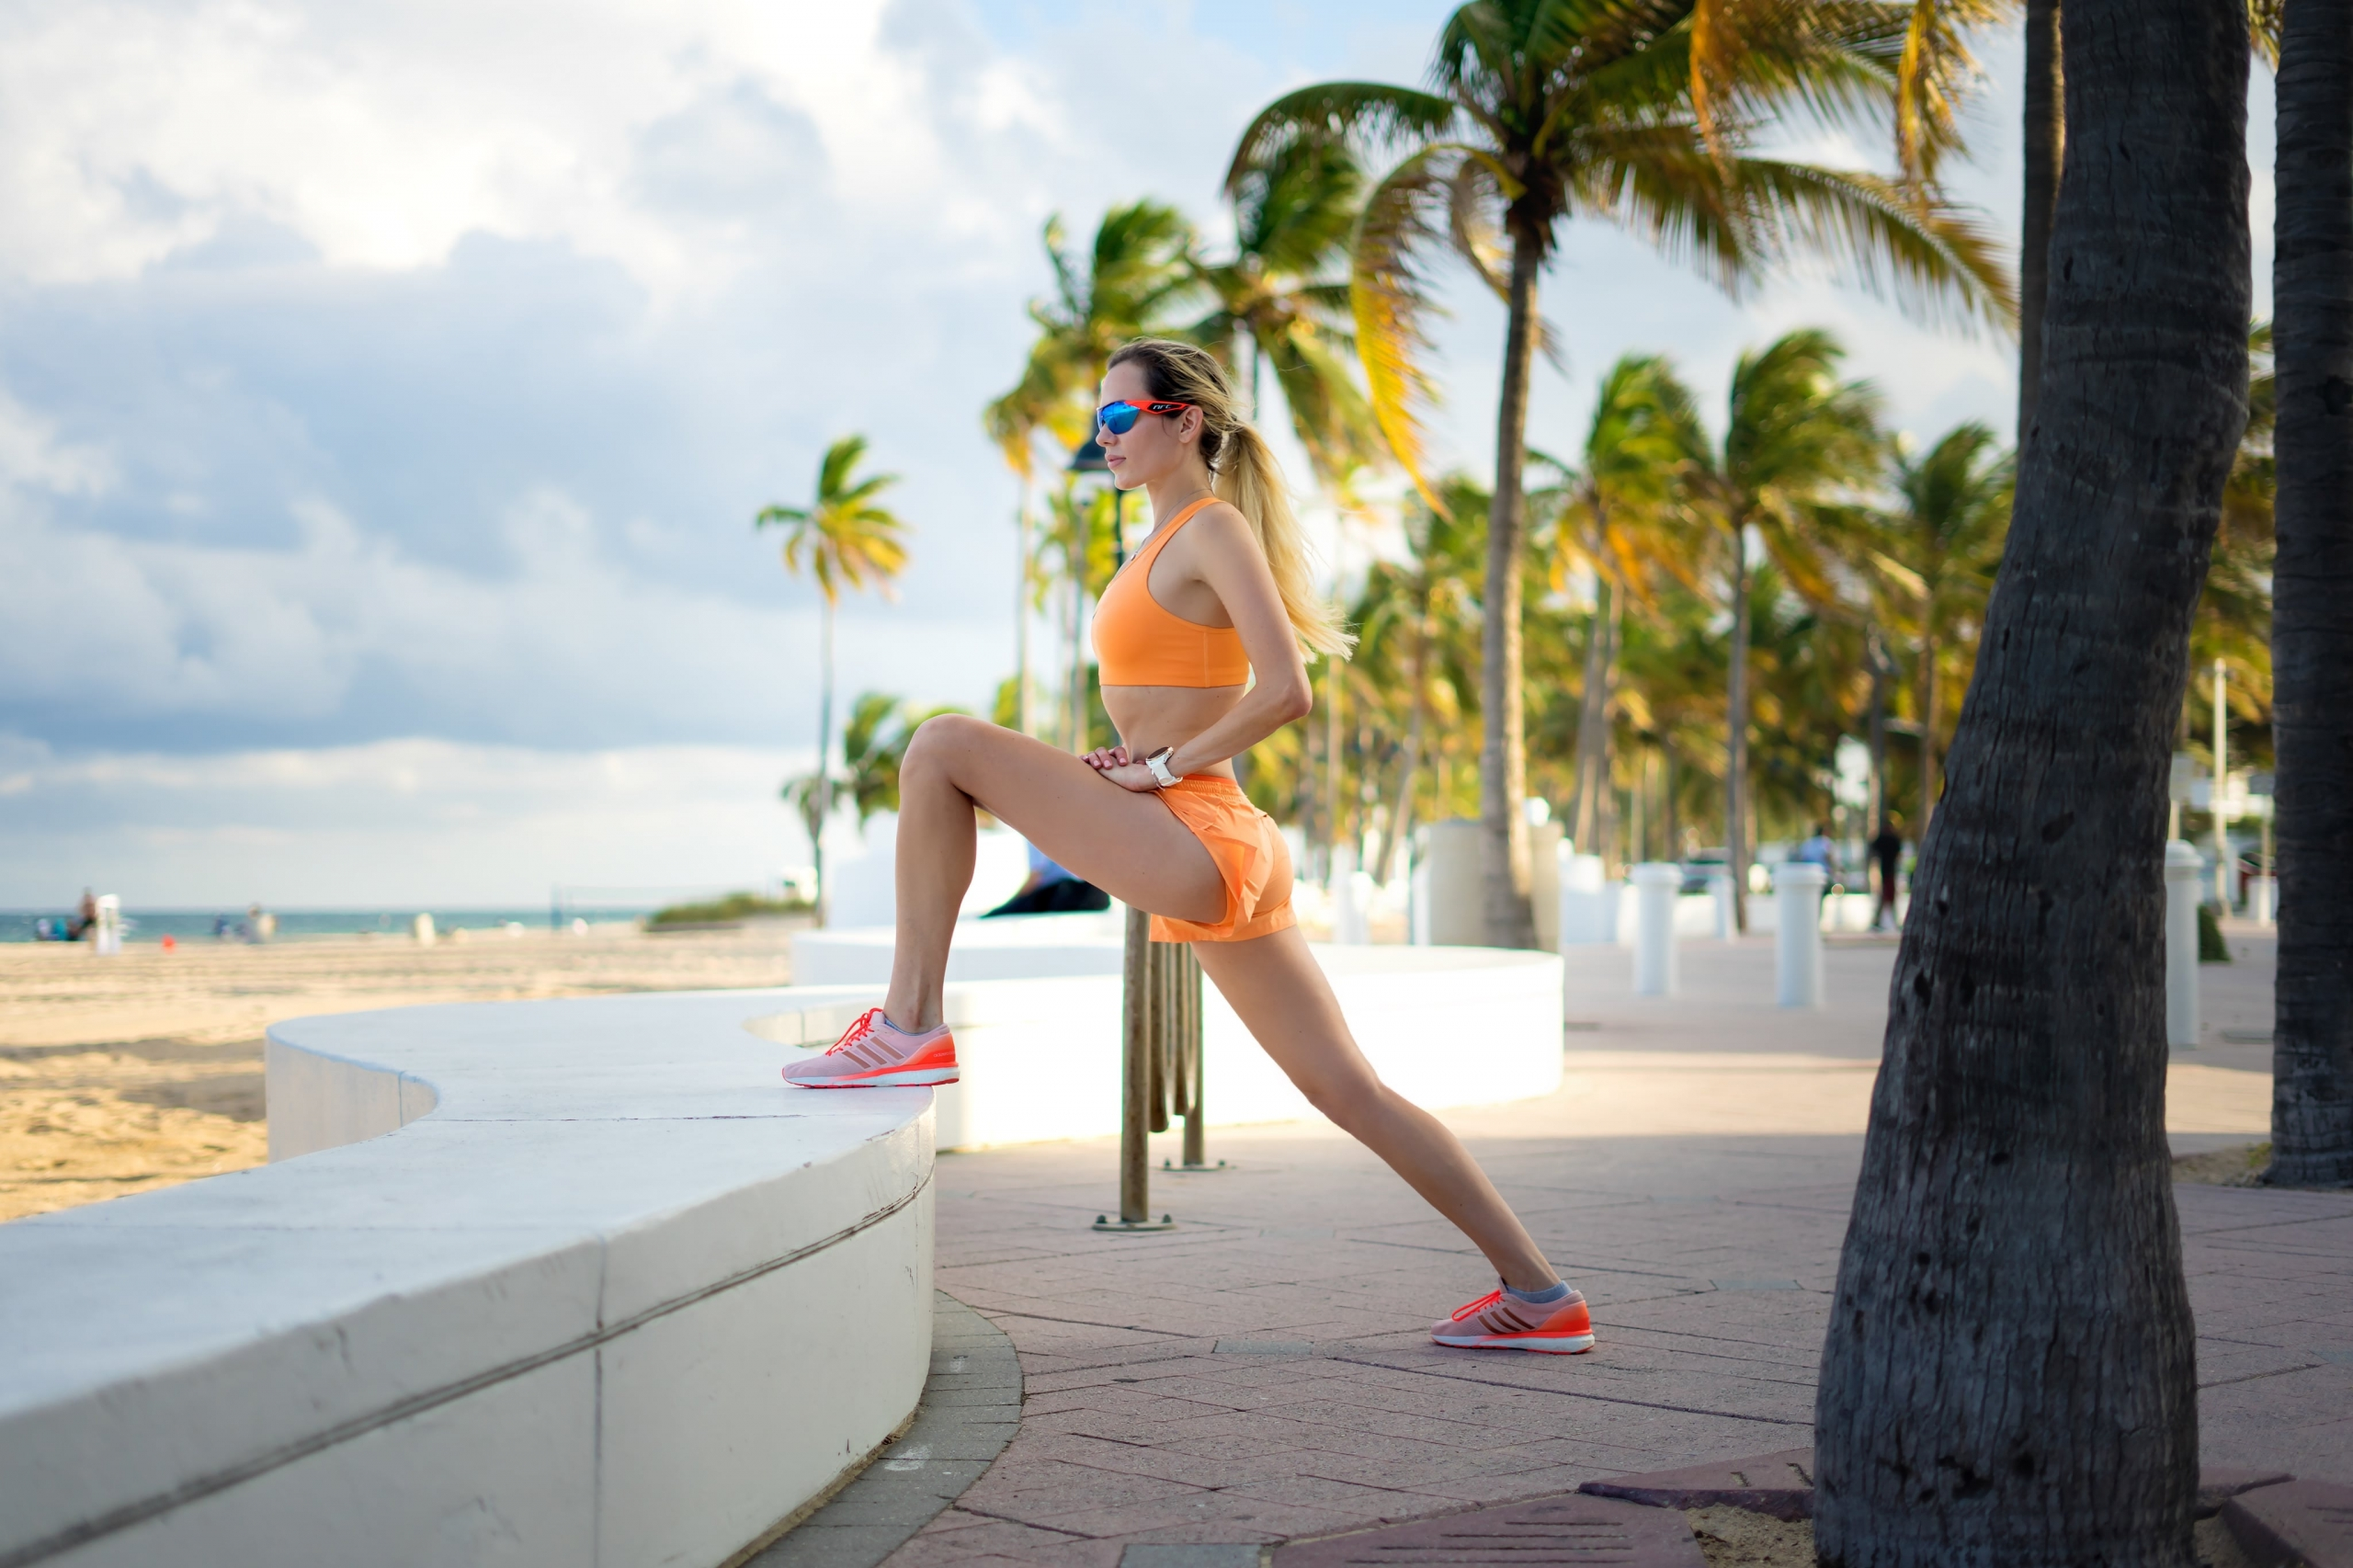 Nadezhda Pavlova fitness Training Florida